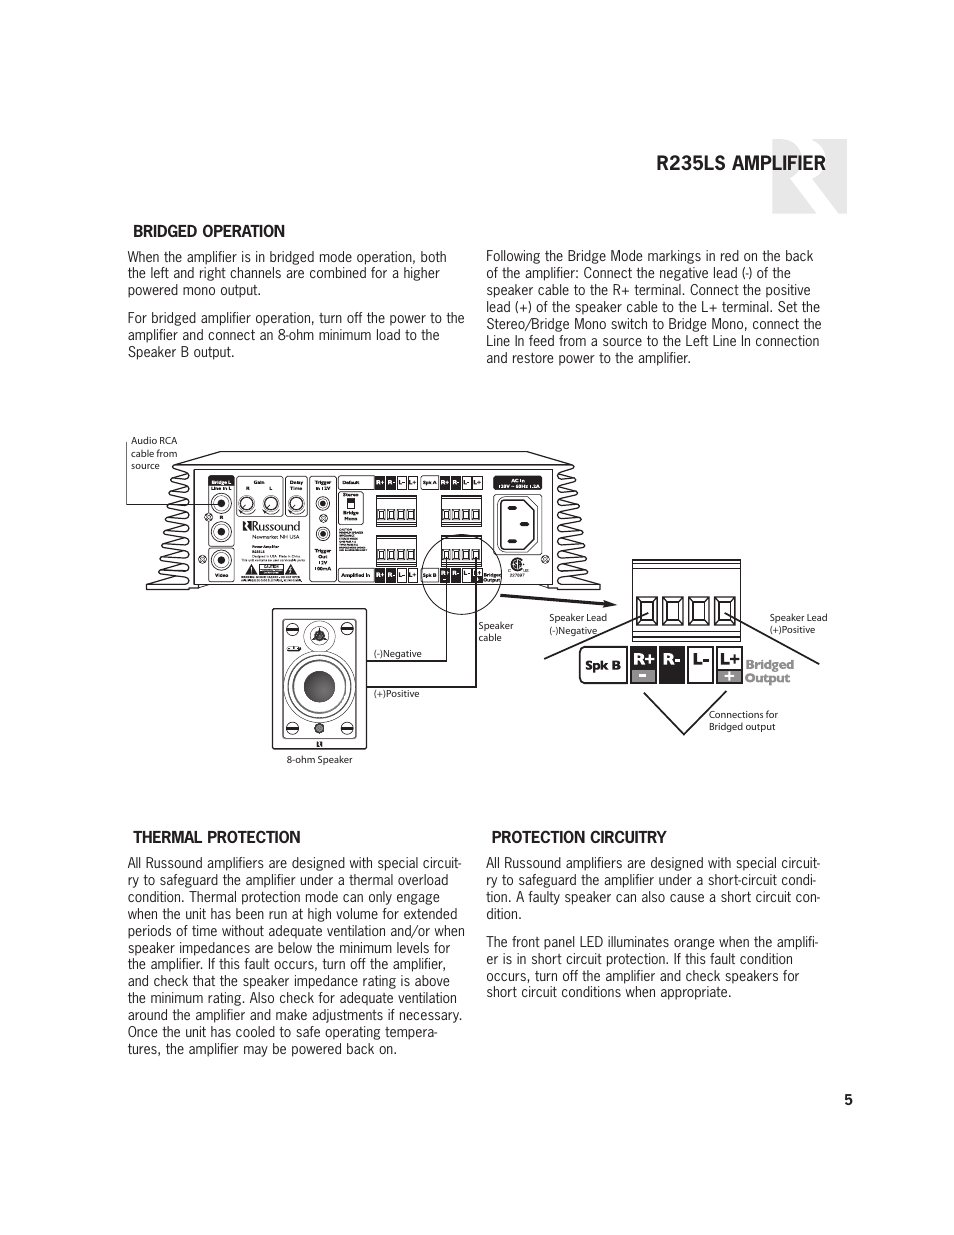 Russound Home Stereo Wiring Diagram Trusted Diagrams R235ls Amplifier User Manual Page 5 8 Subwoofer Guide